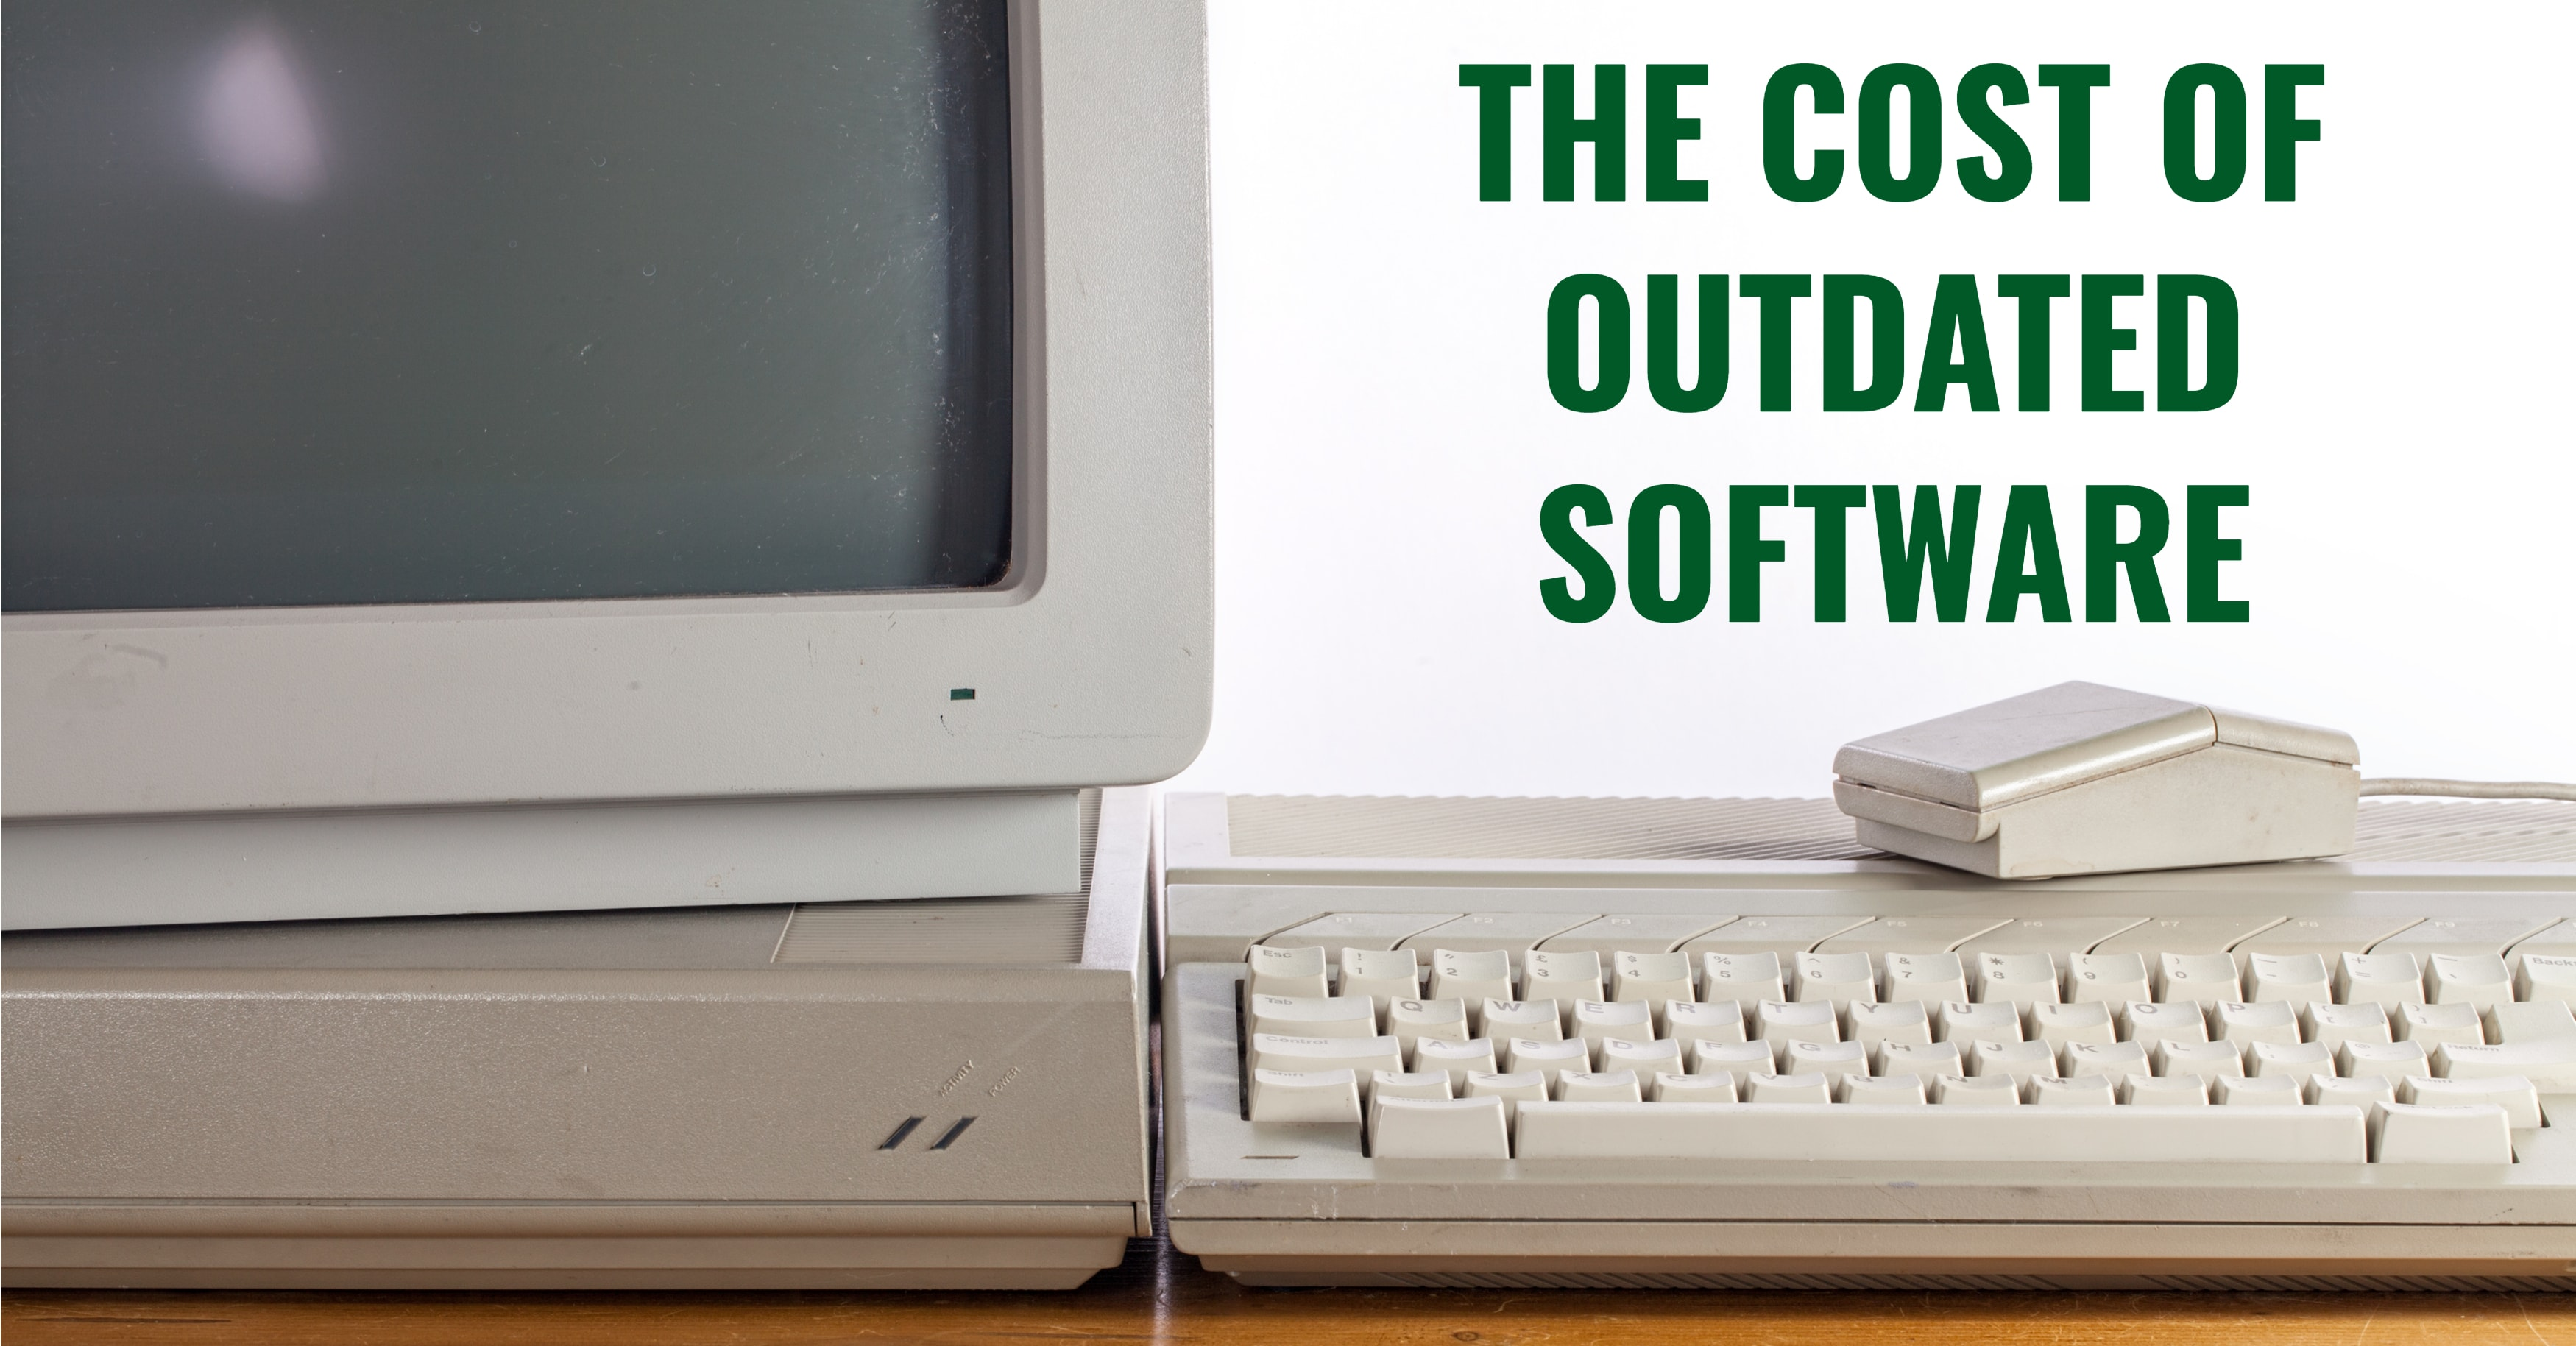 What's the Cost of Outdated Software?